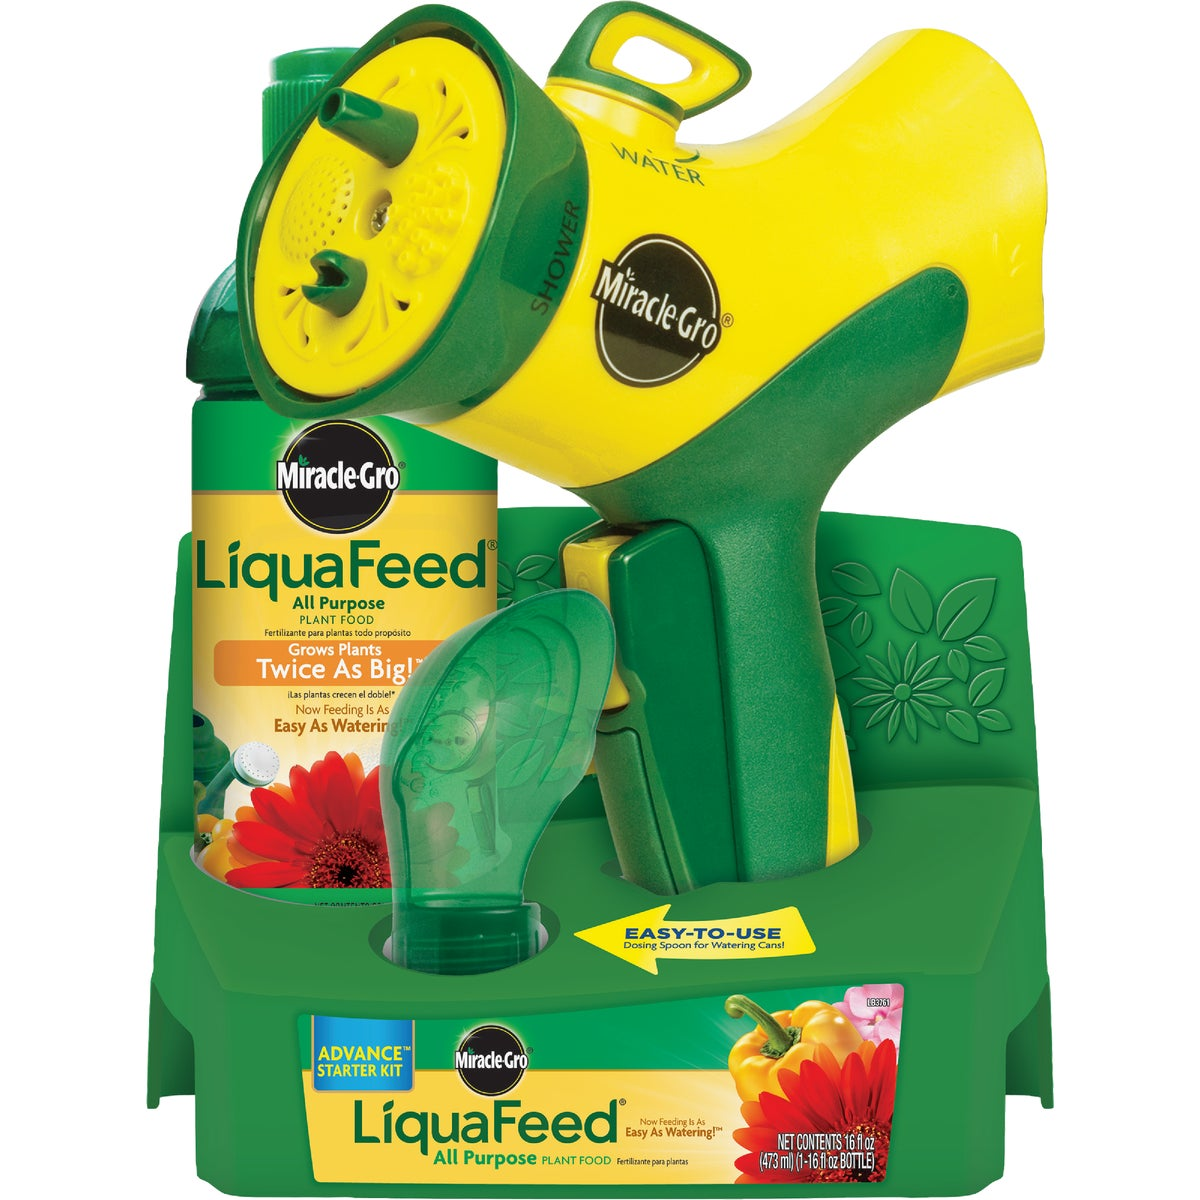 LIQUAFEED STARTER KIT - 1016111 by Scotts Company